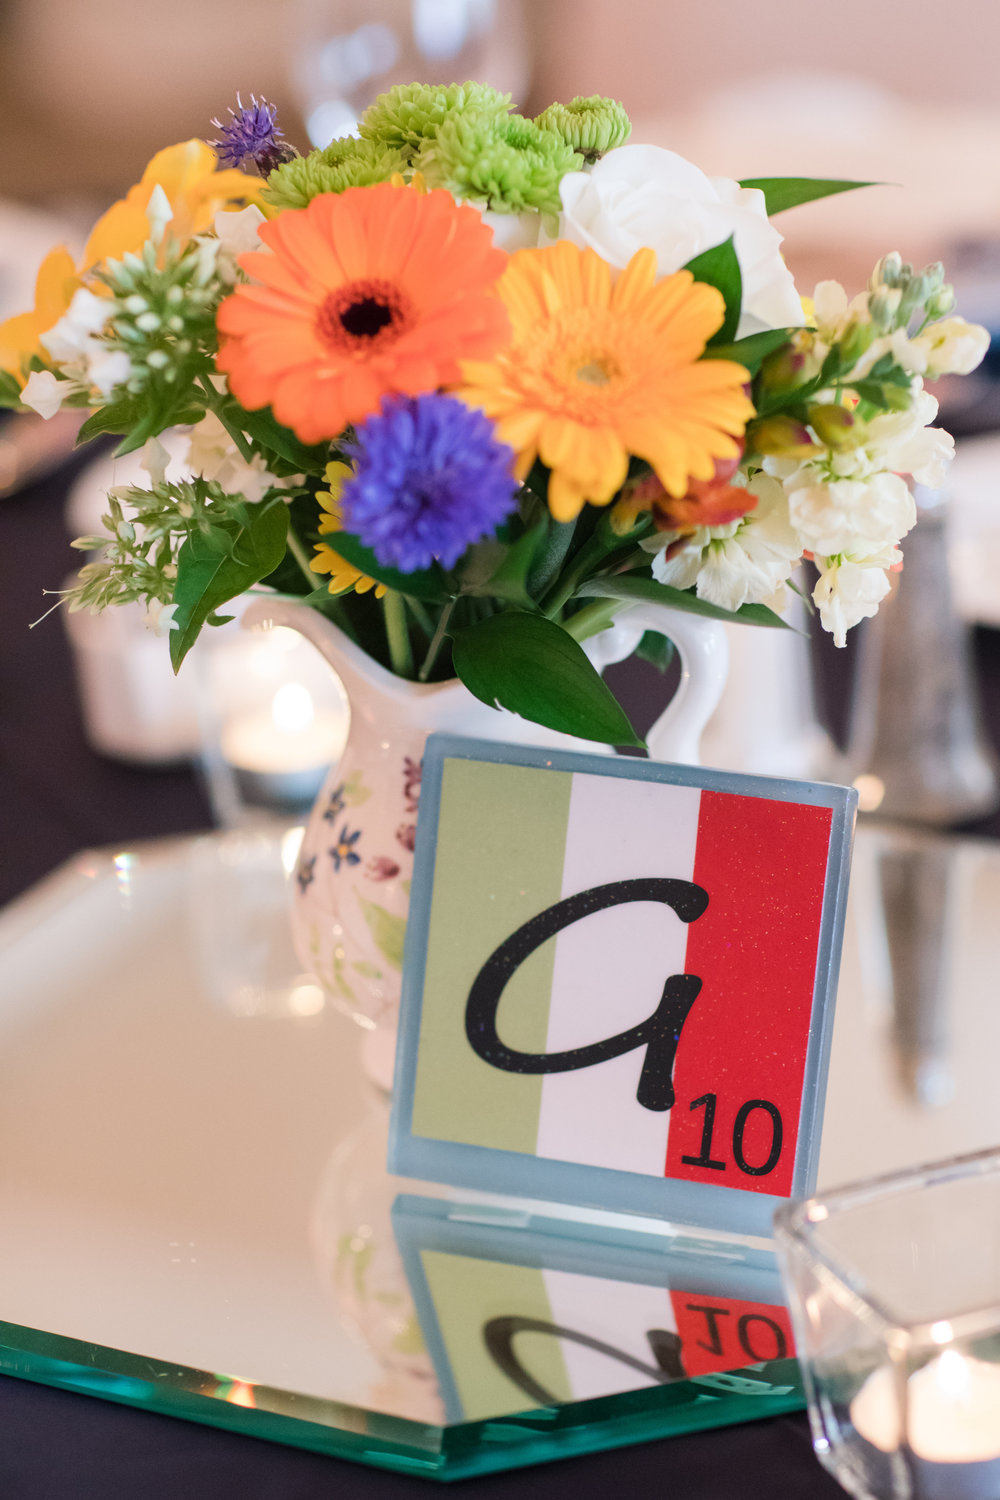 Unique Wedding Table Numbers - A Classic George Washington Hotel Wedding - Photography by Marirosa